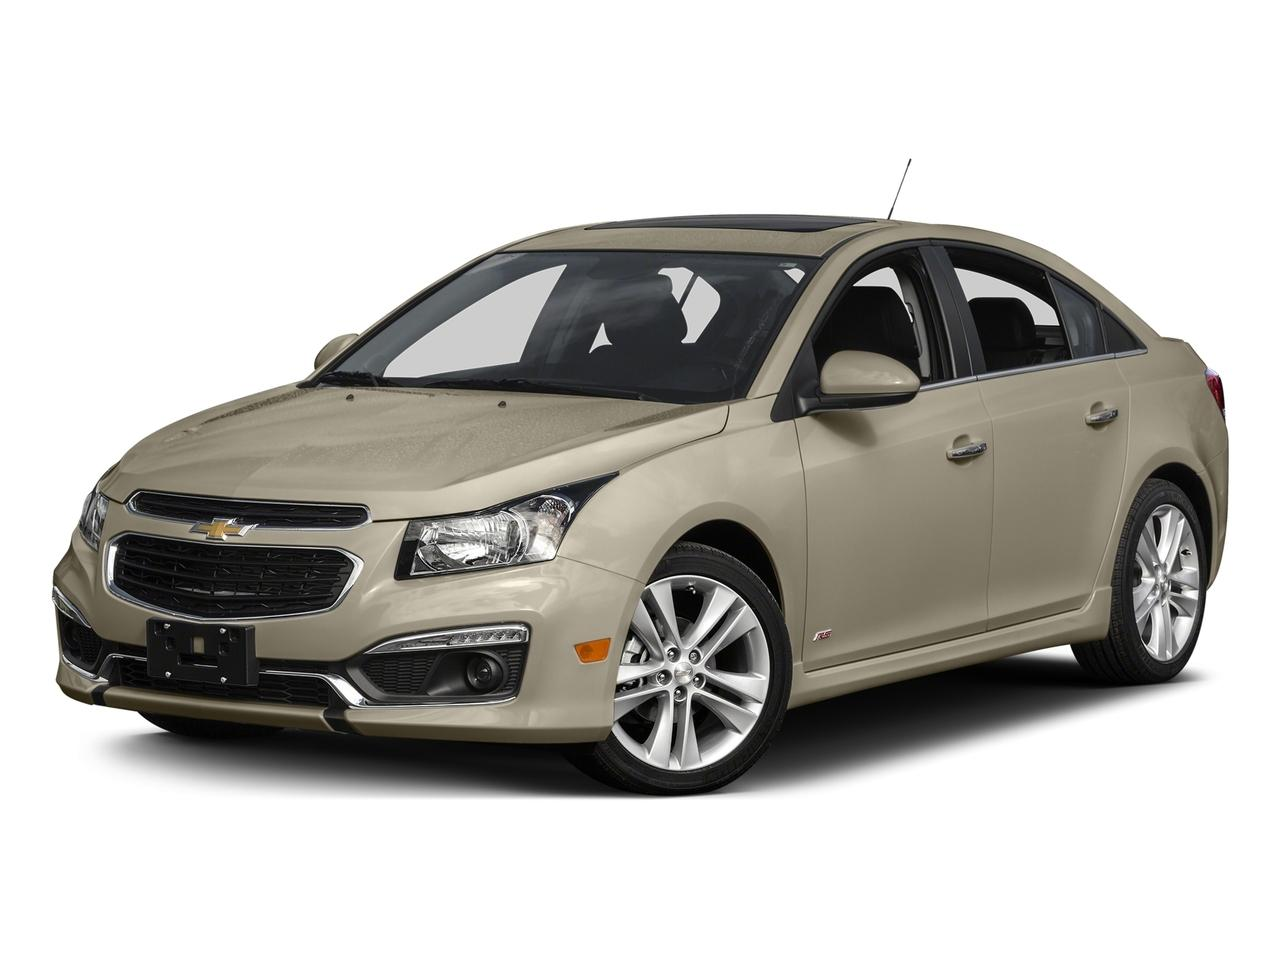 2015 Chevrolet Cruze Vehicle Photo in Westlake, OH 44145